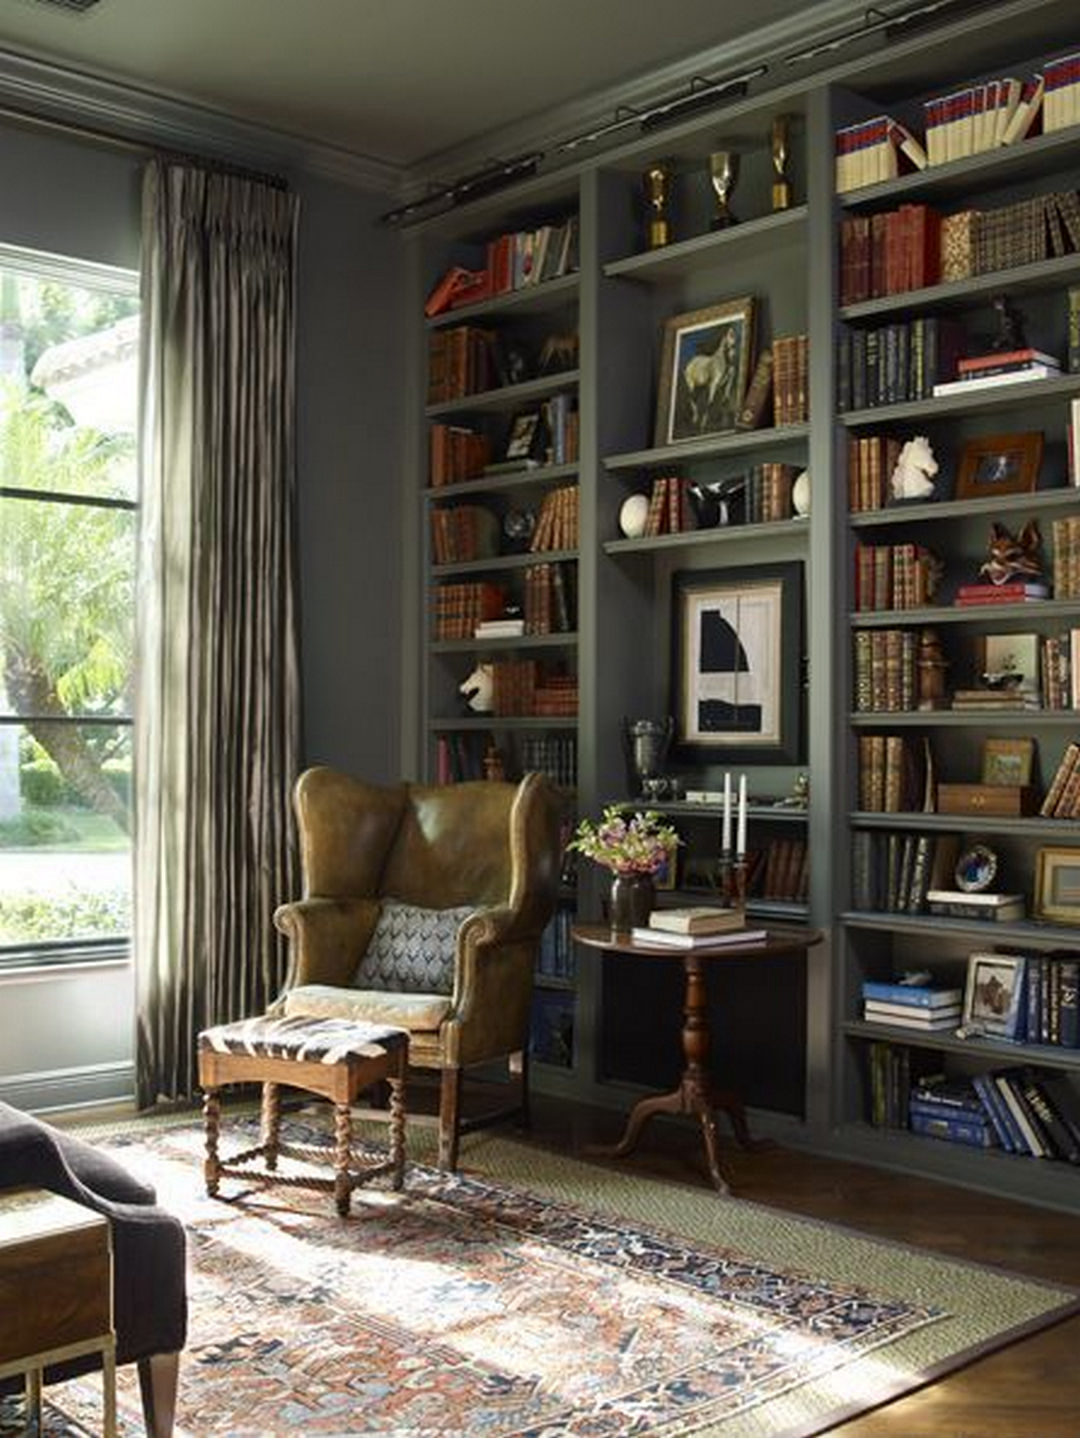 81 Cozy Home Library Interior Ideas httpswwwfuturistarchitecturecom